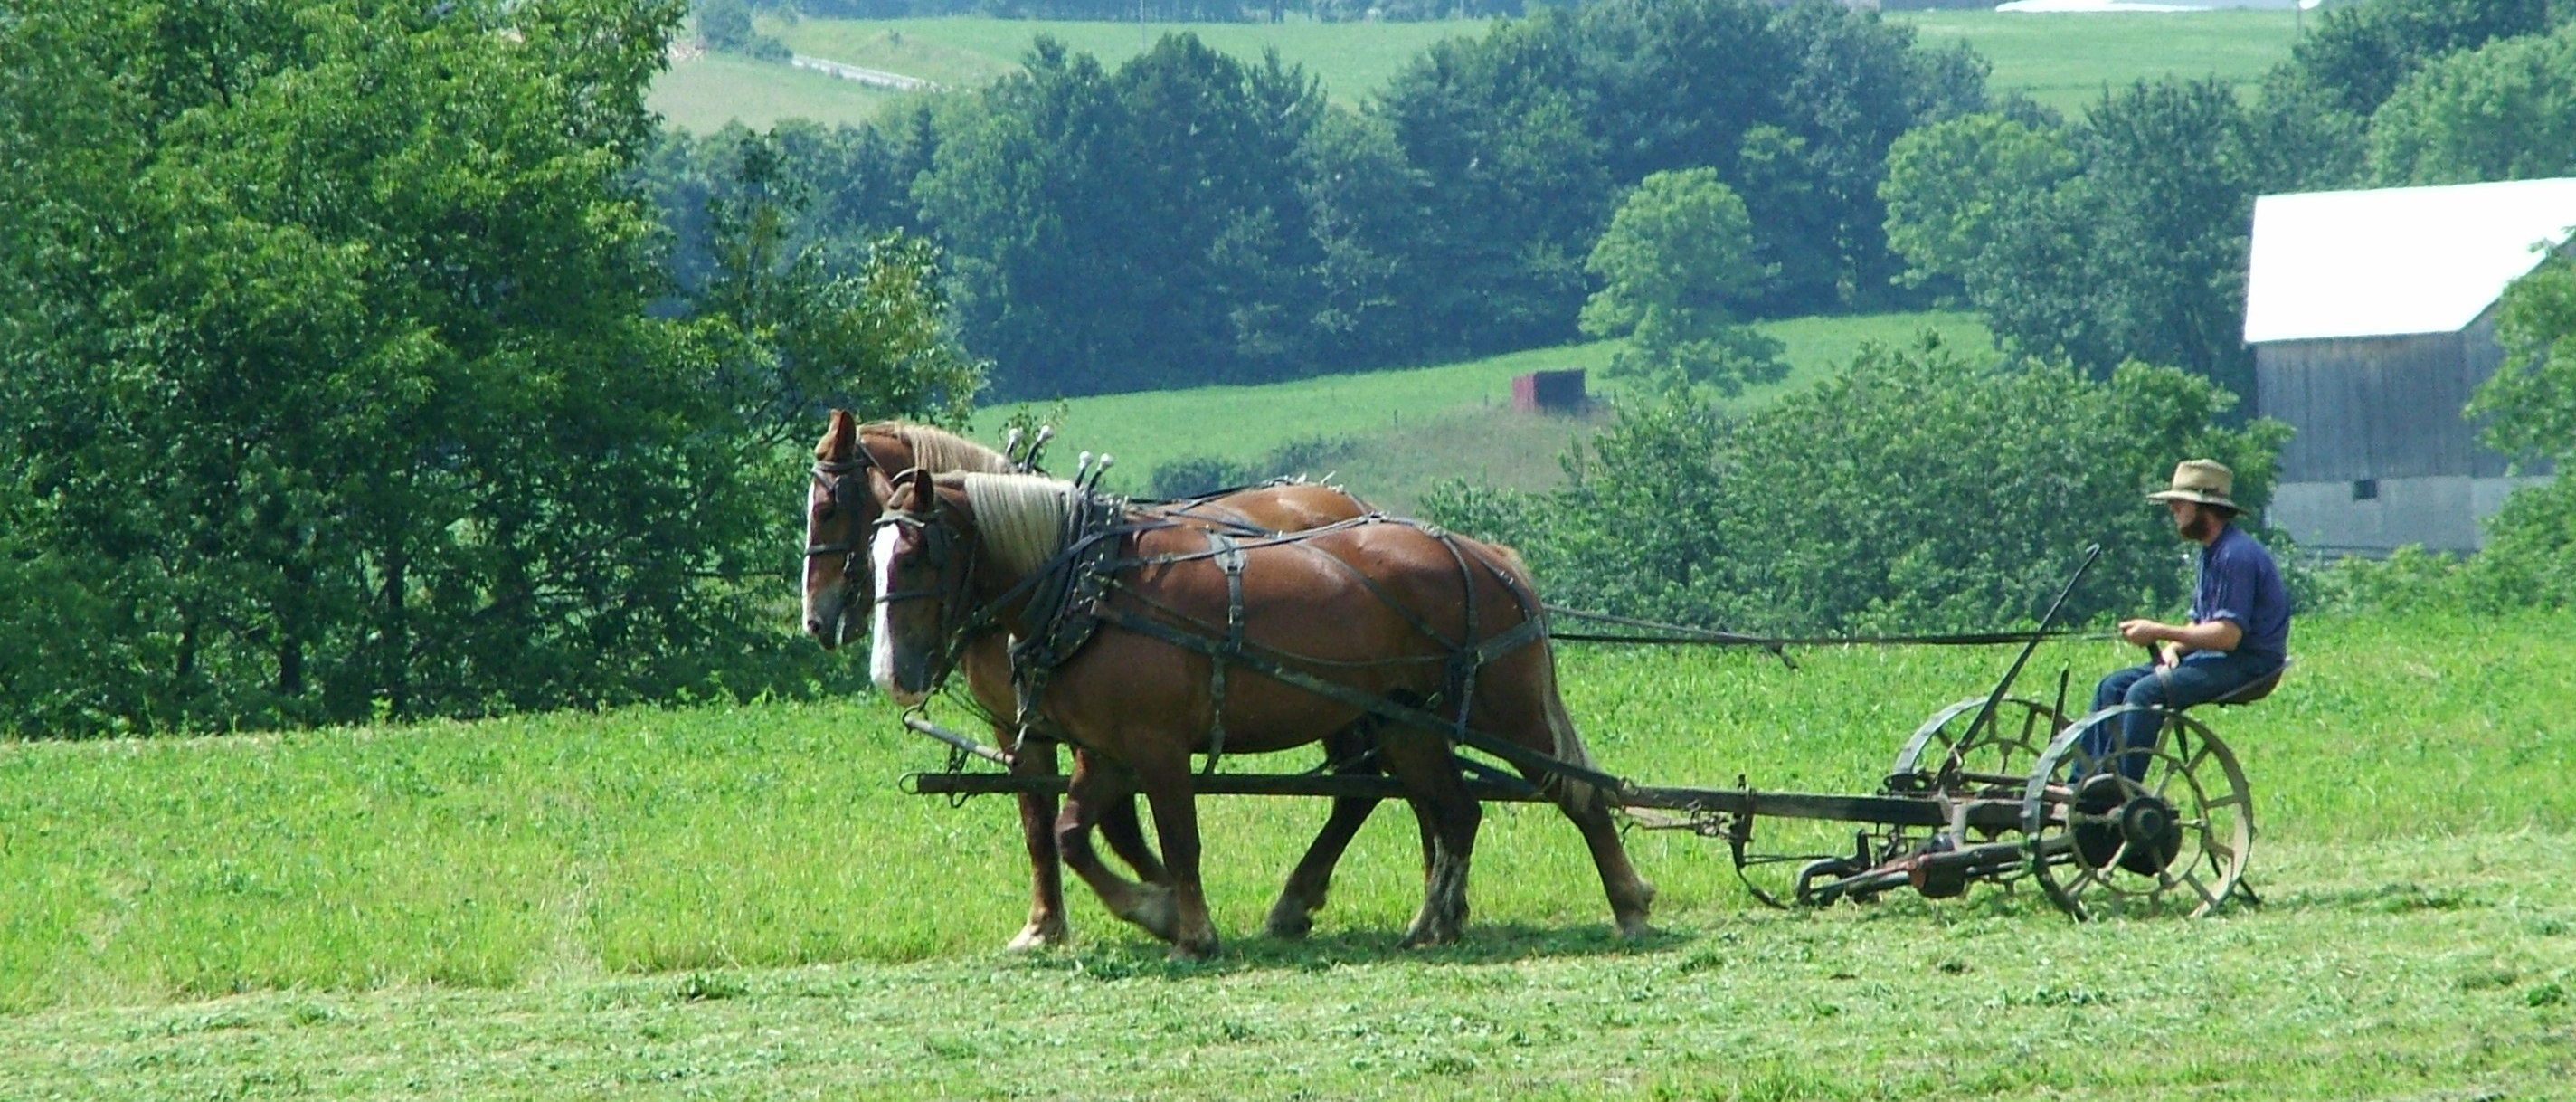 Amish farmer mowing field using horse drawn equipment